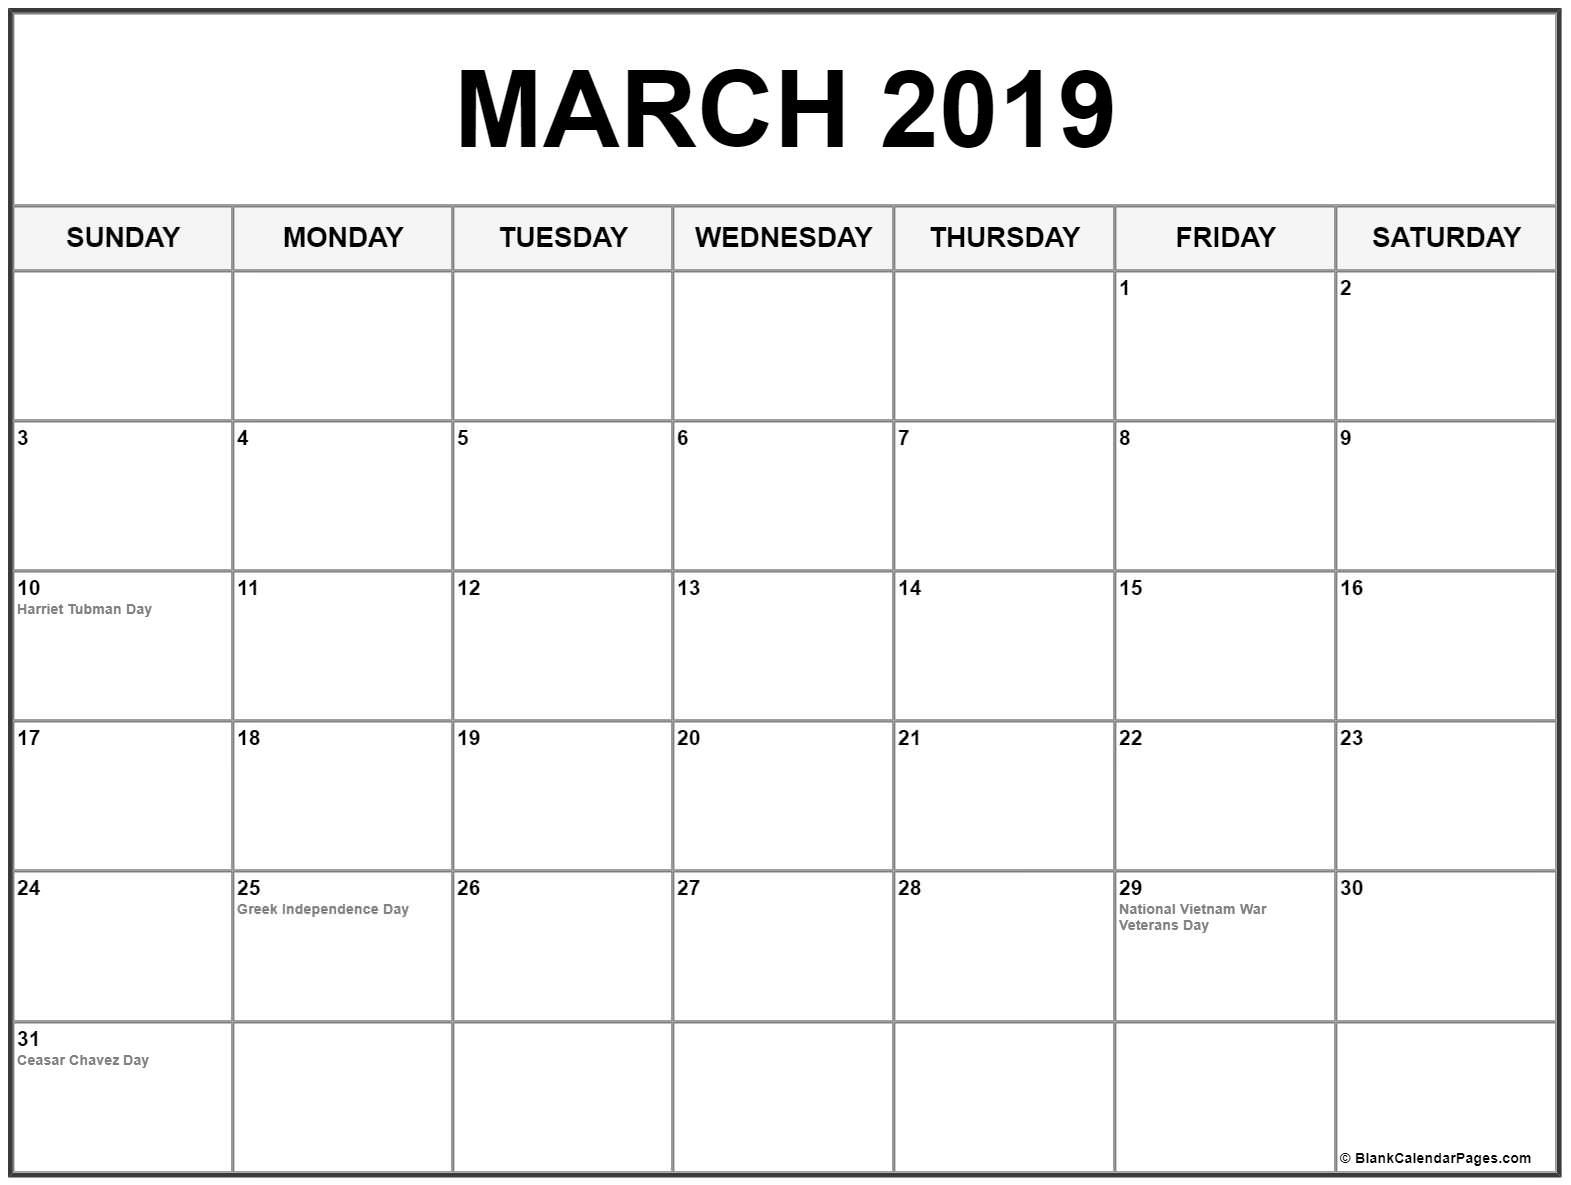 Blank Calendar March 2019 Printable | 250+ March 2019 Calendars within 31 Day Blank Calendar Template